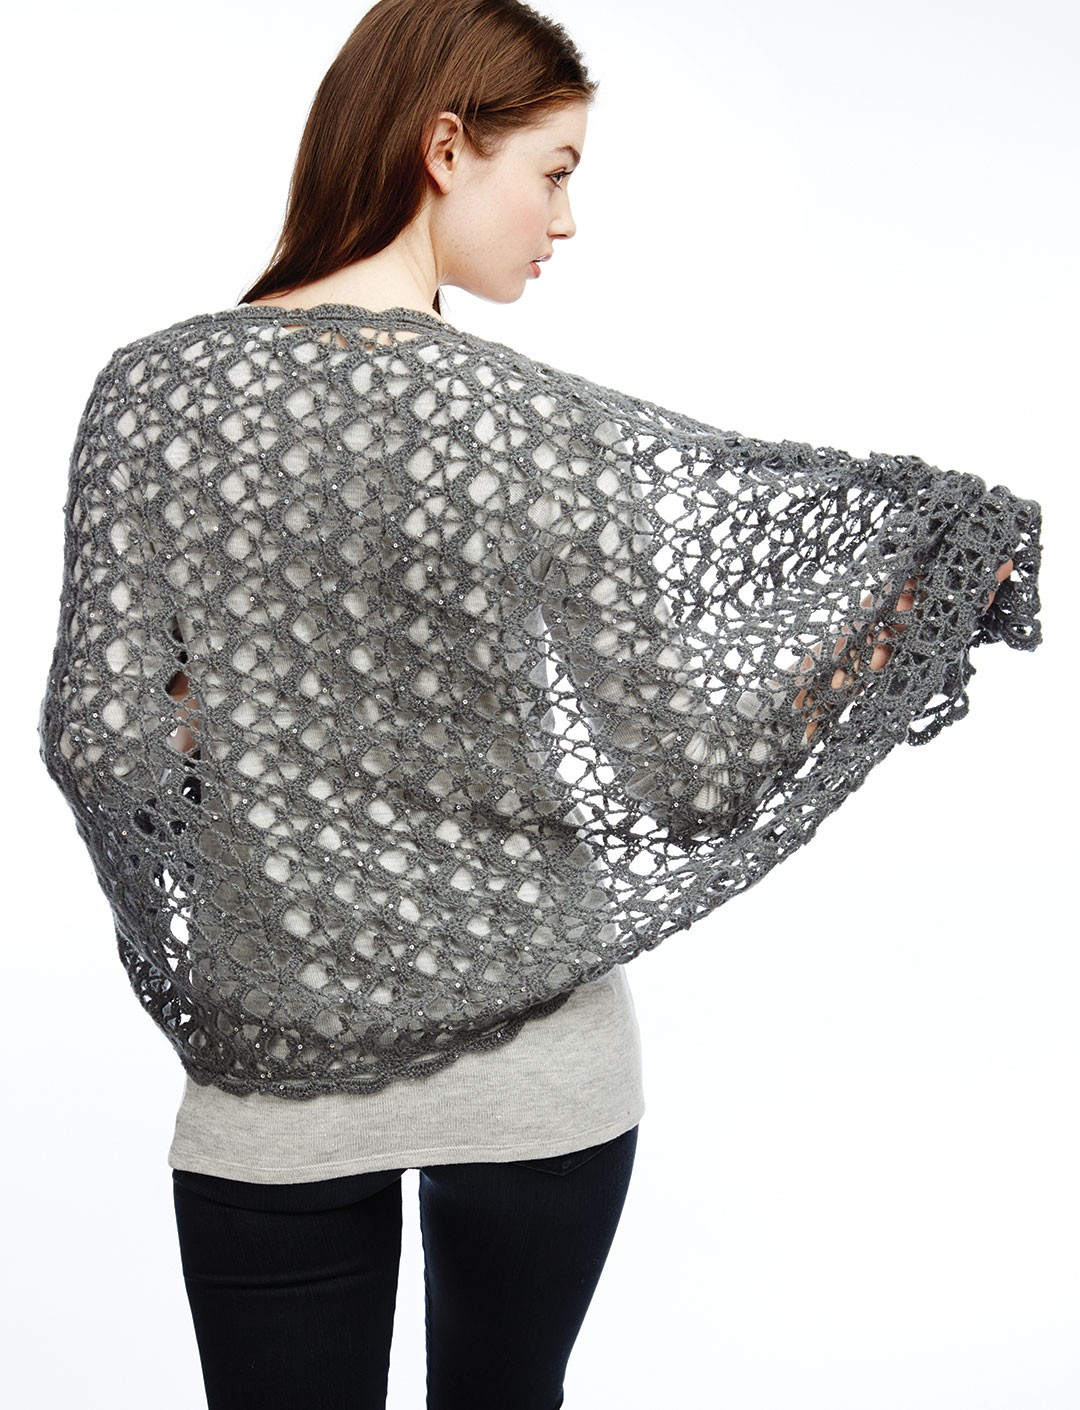 Crochet Shawl Patterns With Bulky Yarn : Patons Shine Like Diamonds, Crochet Pattern Yarnspirations